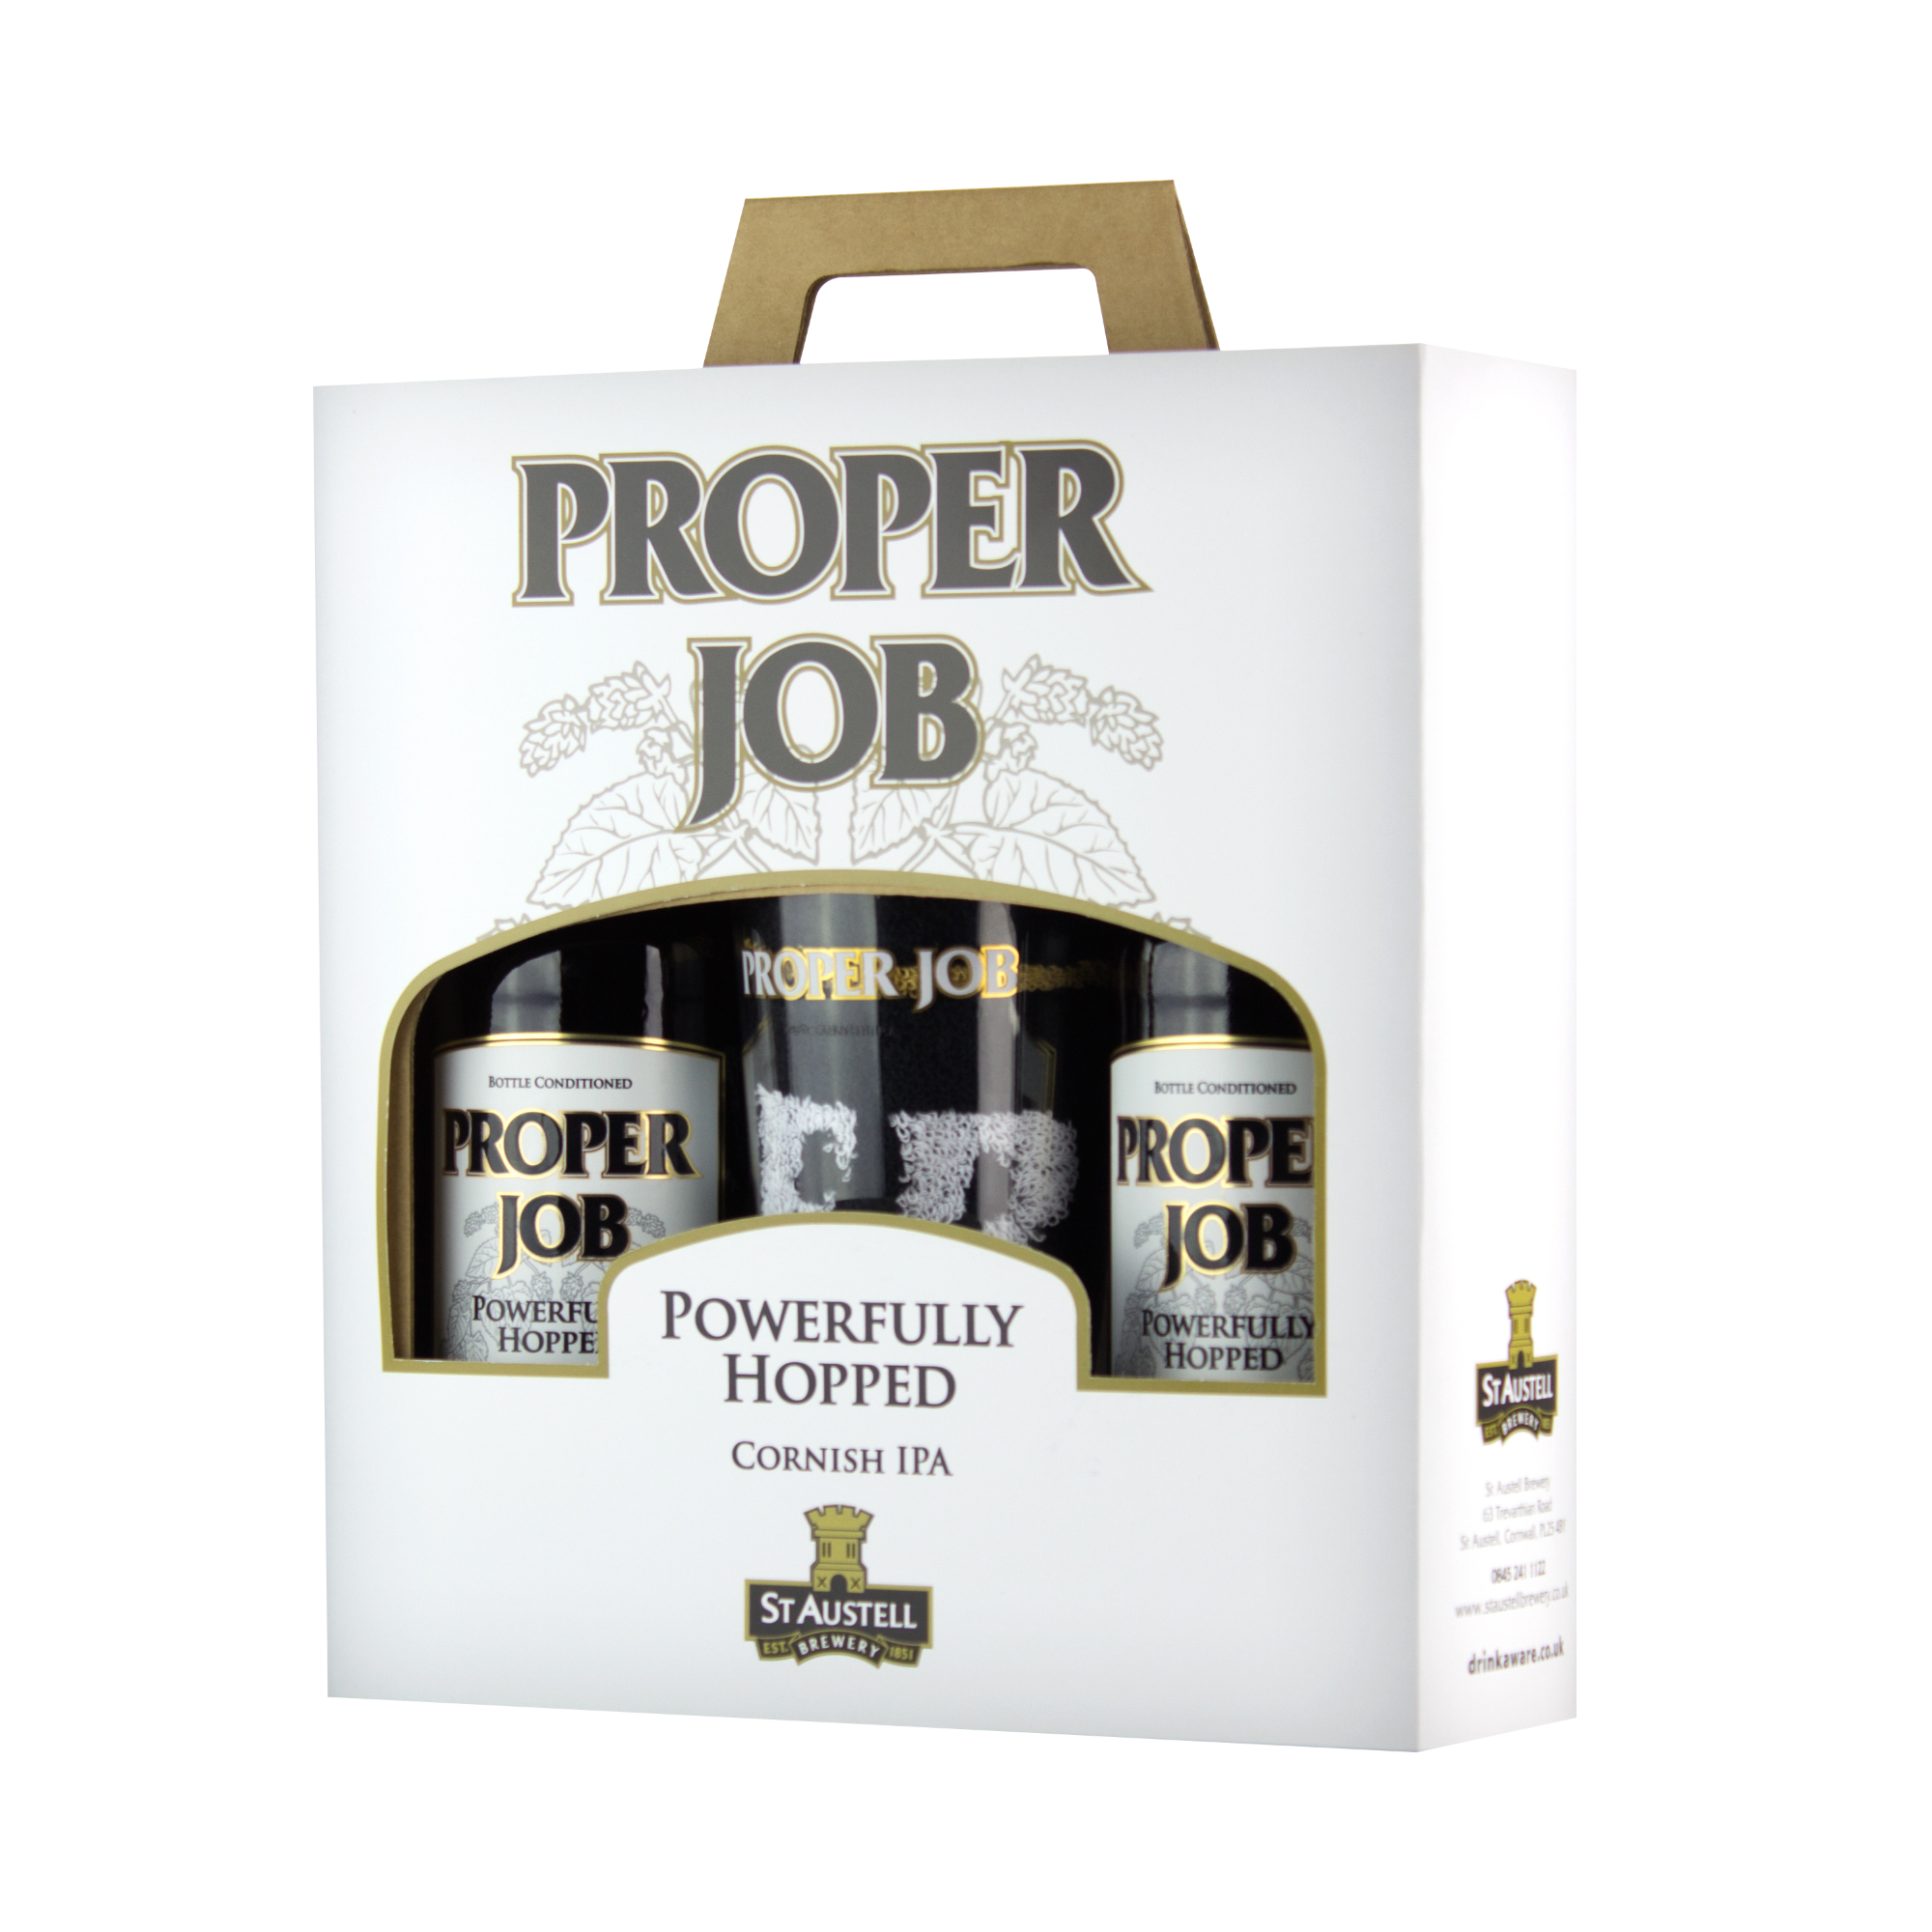 Proper Job Bottle and Glass Gift Pack